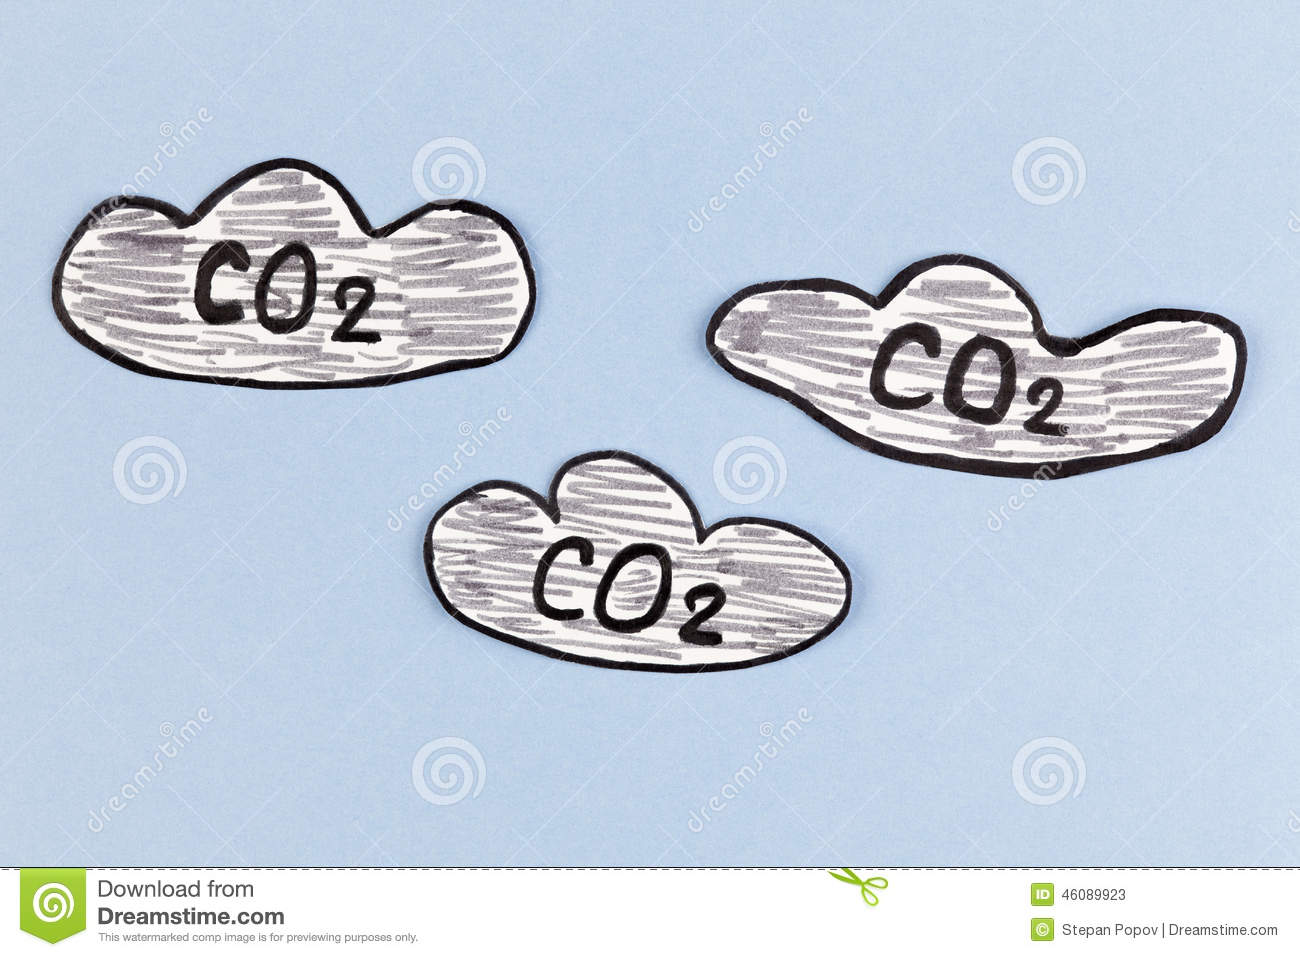 carbon dioxide 2 essay There are many simple ways to reduce the size of my carbon footprint carbon footprint essay earth's biological cycle produces carbon dioxide and.